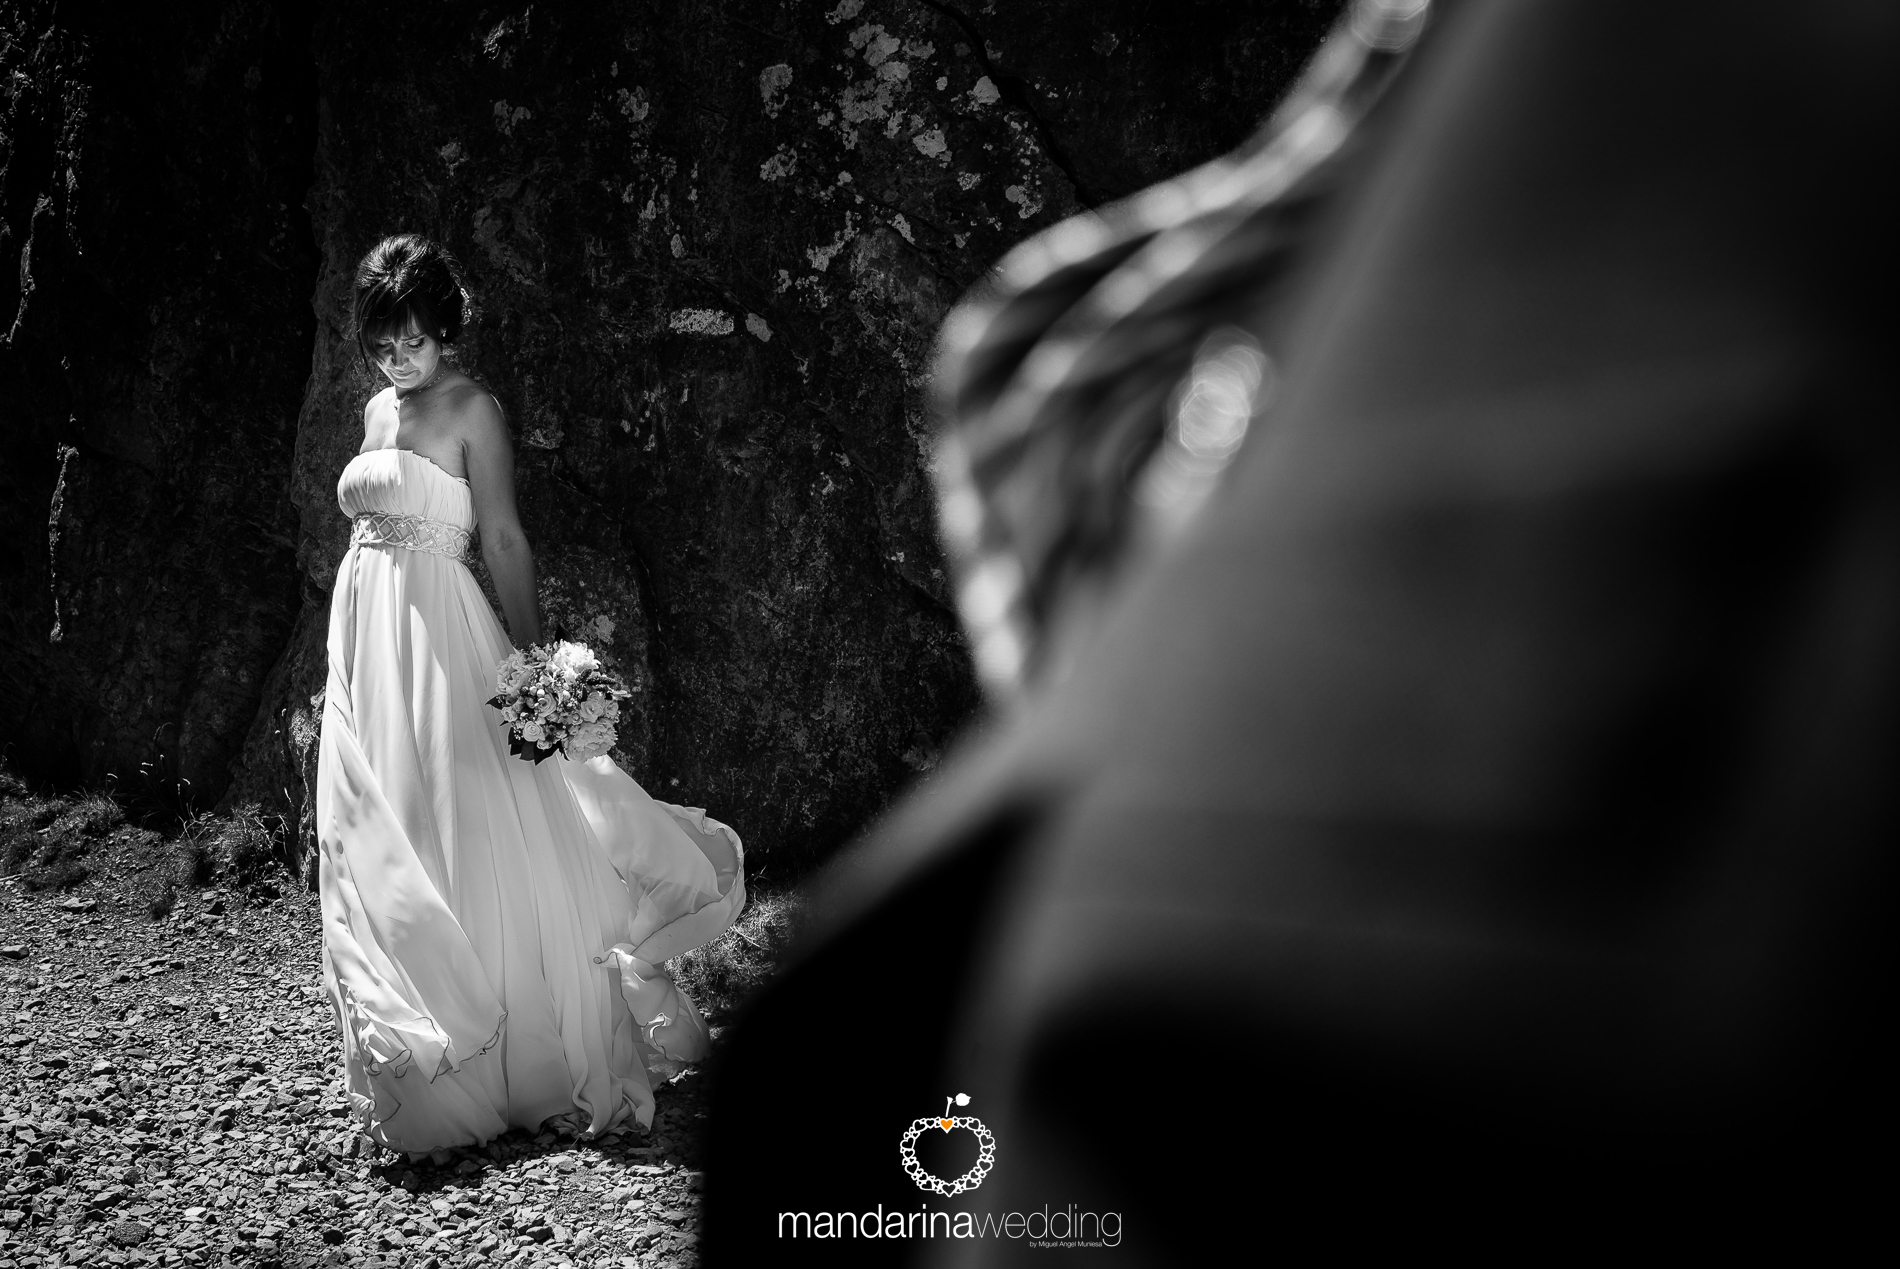 mandarina wedding_31